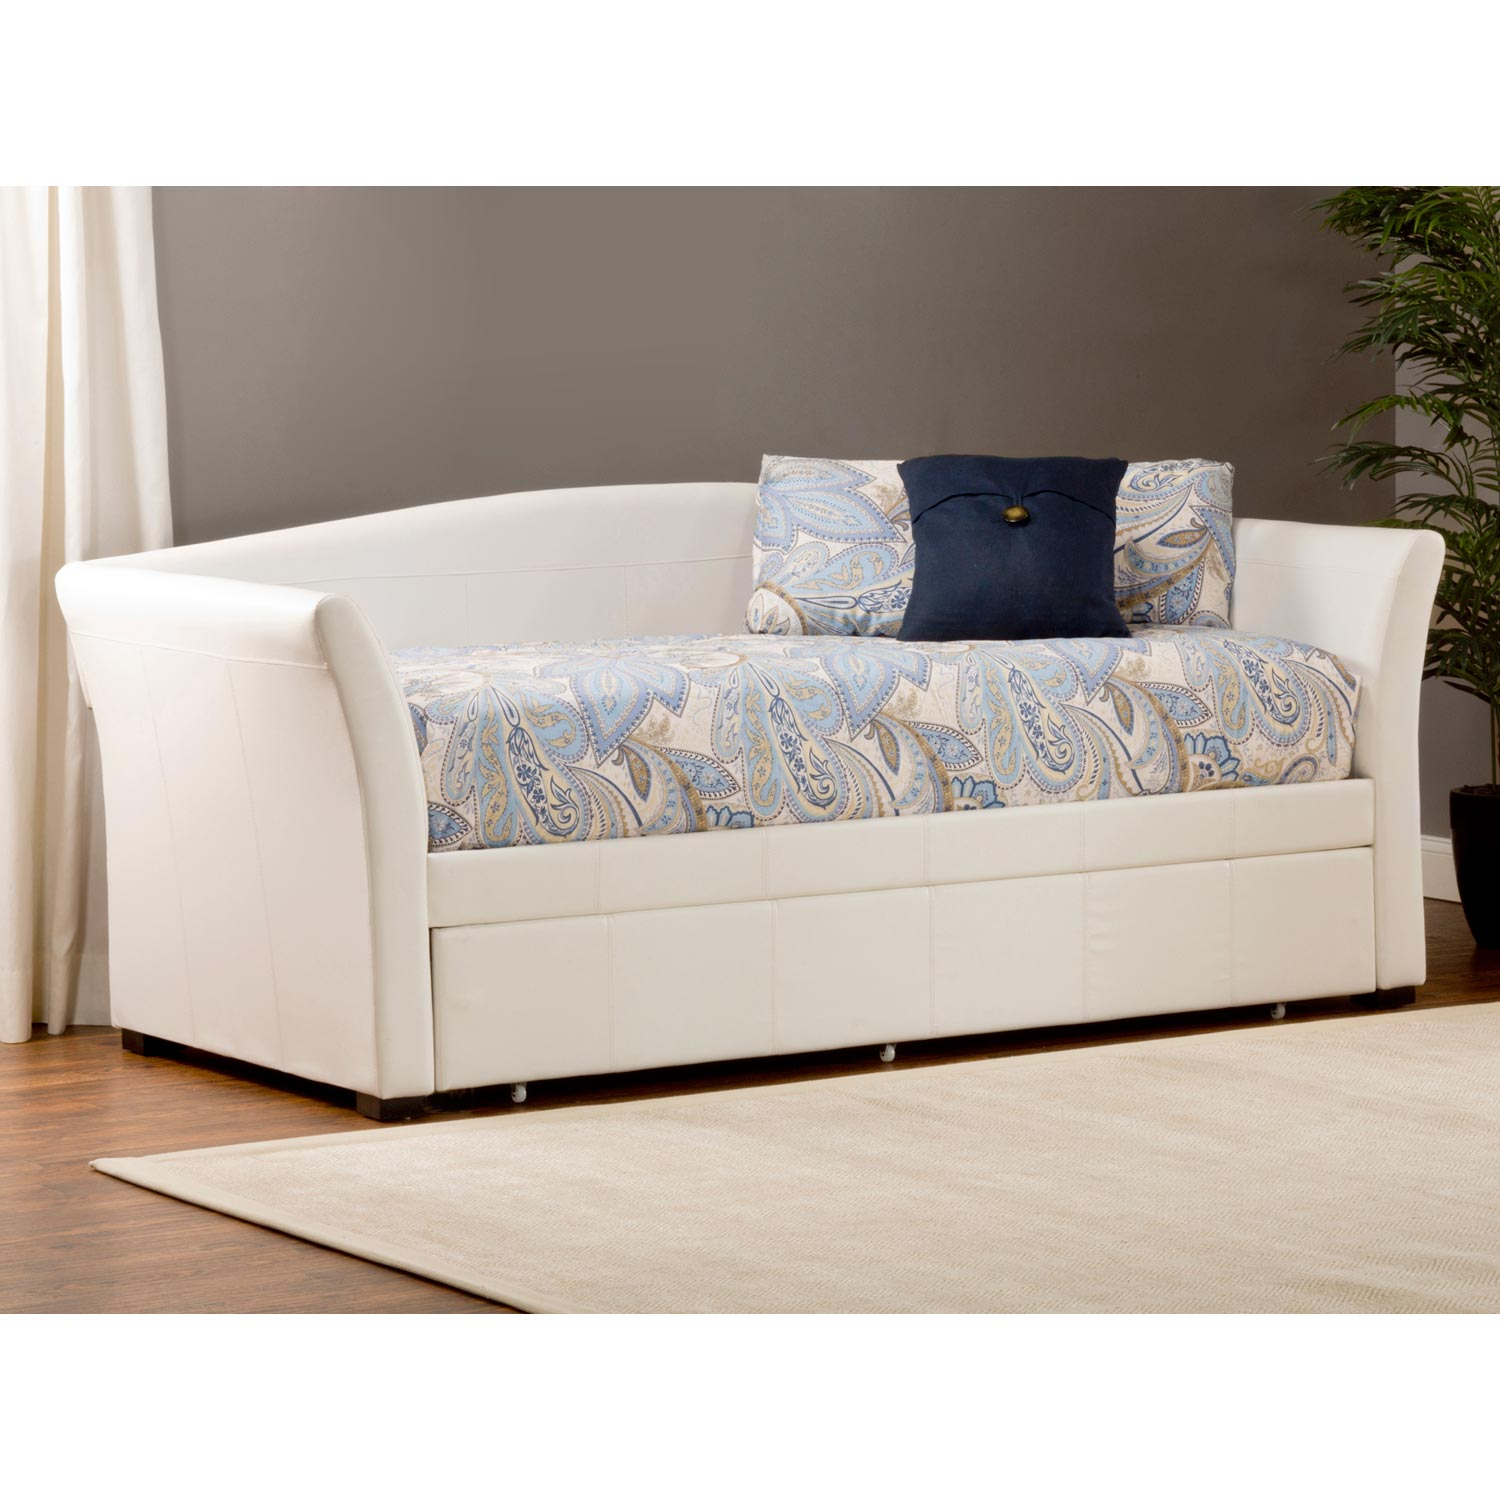 contemporary daybed with patterned upholstery. upholstered daybed with tufted detail  homesfeed